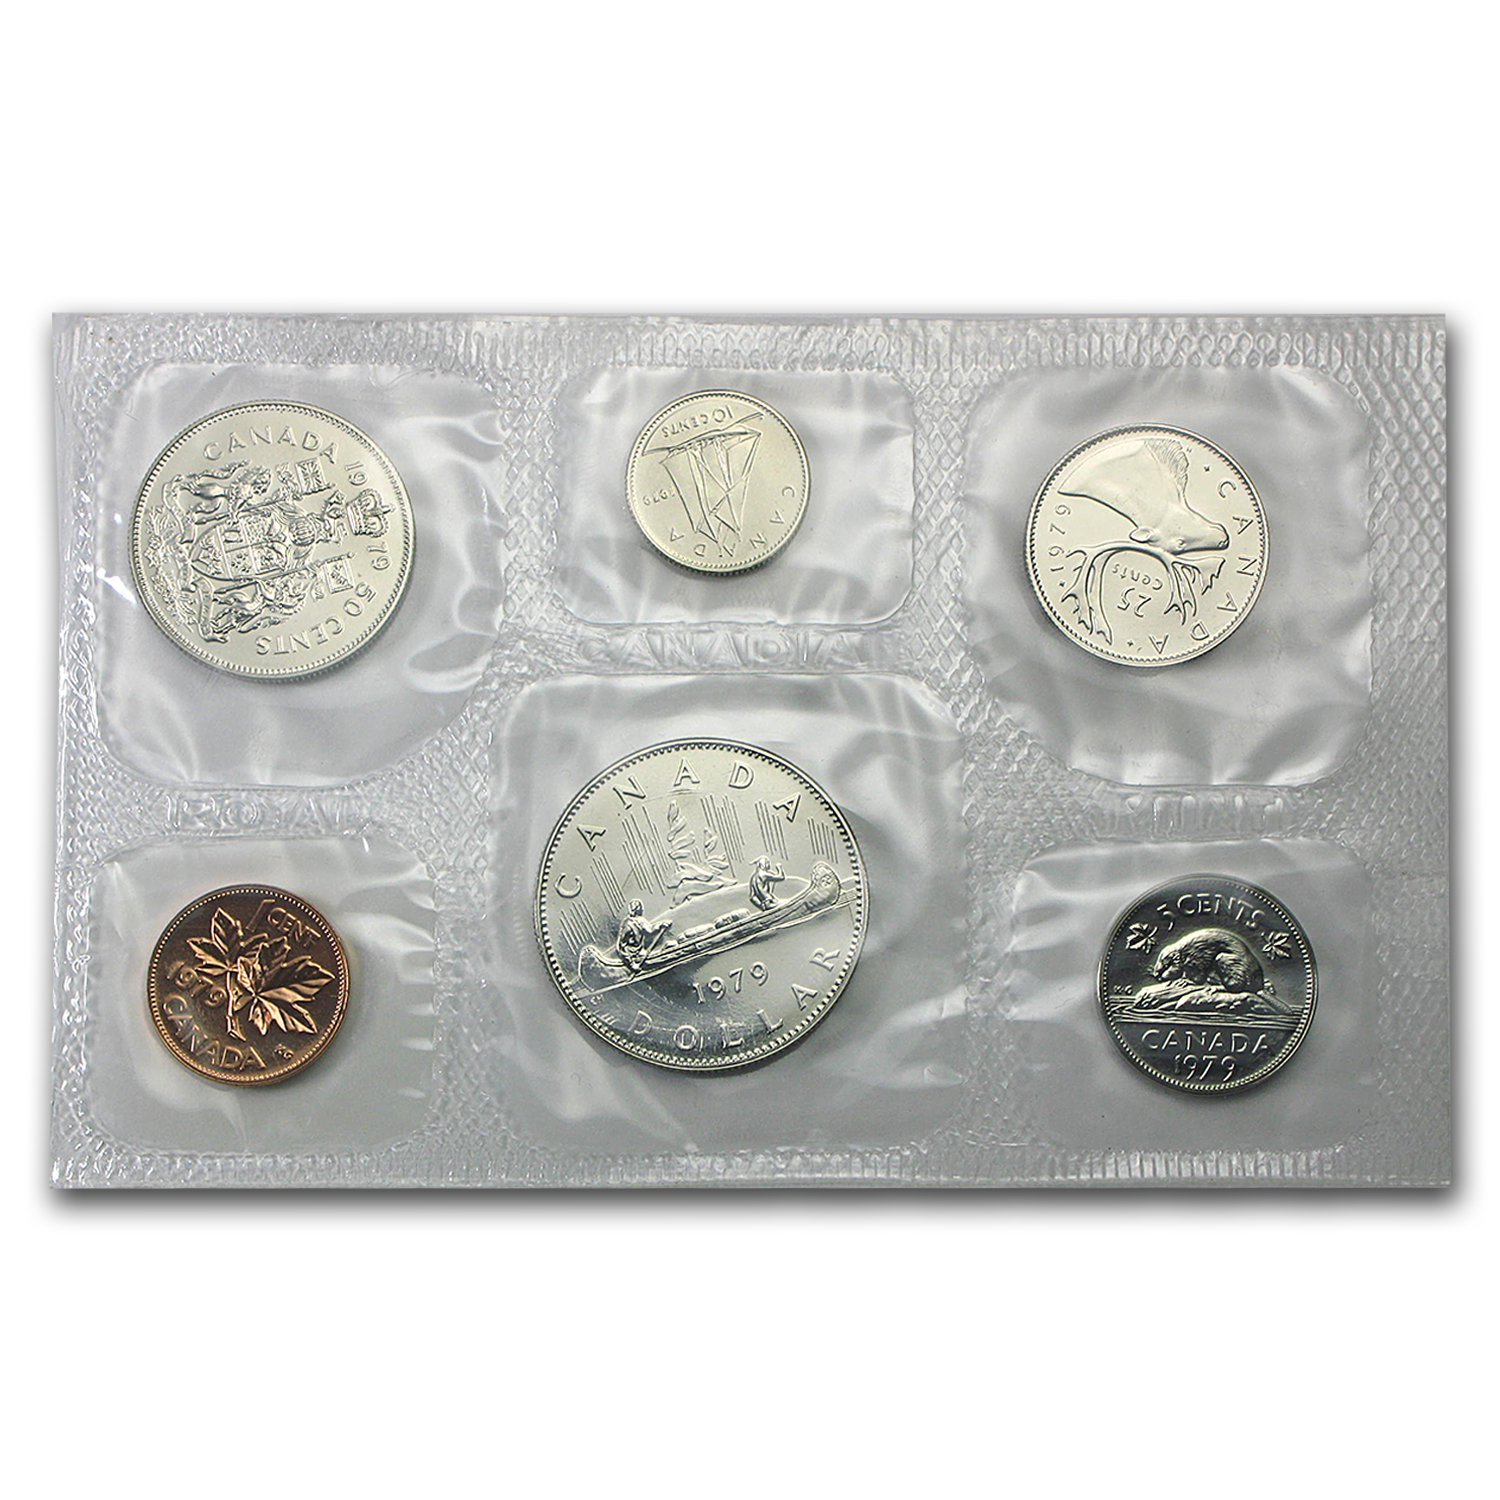 1979 Canada Proof Like 6 Piece Coin Set